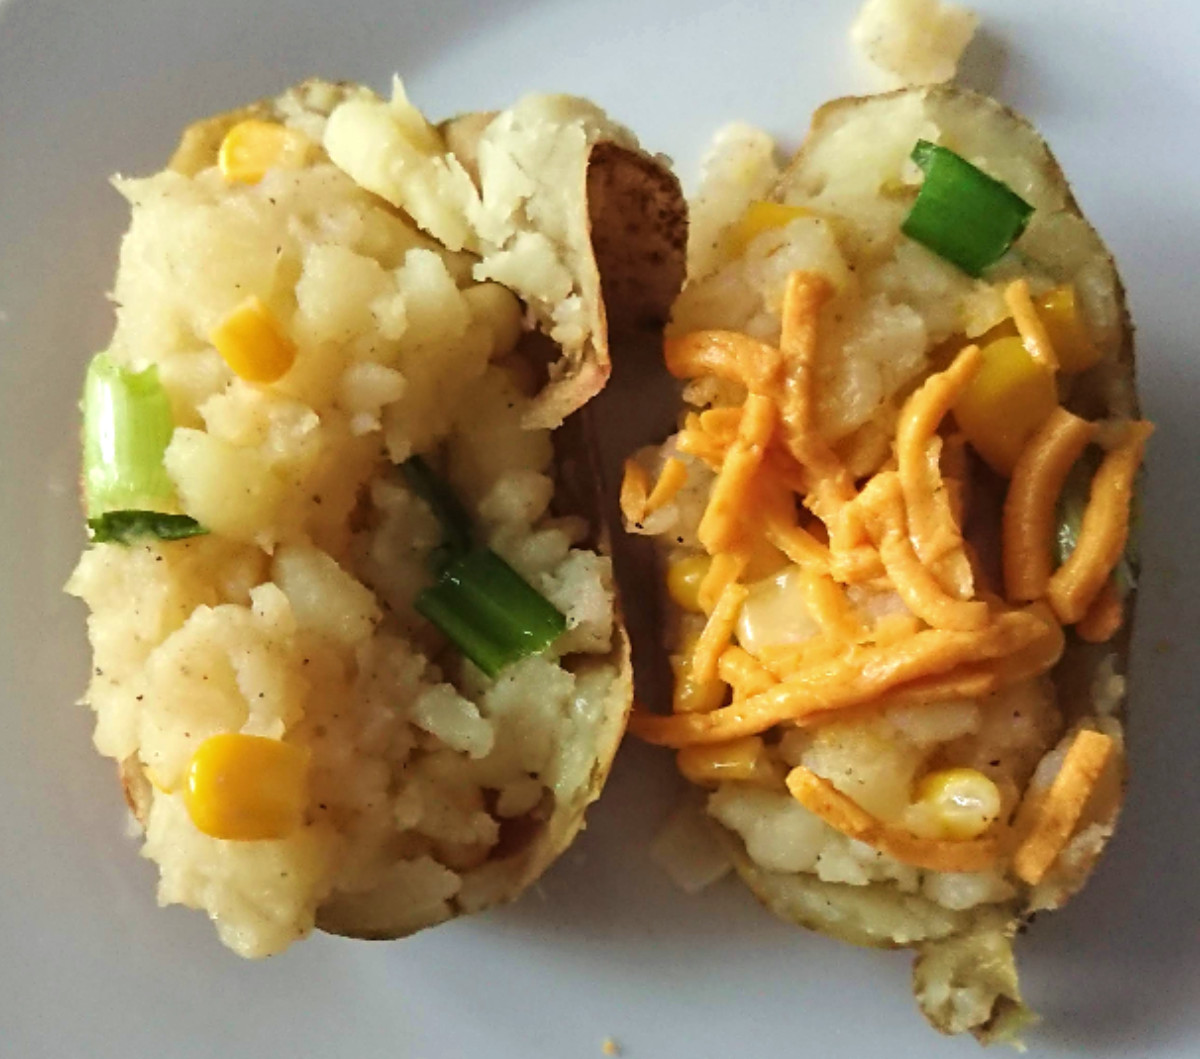 Gluten Free and Dairy Free Baked Potatoes